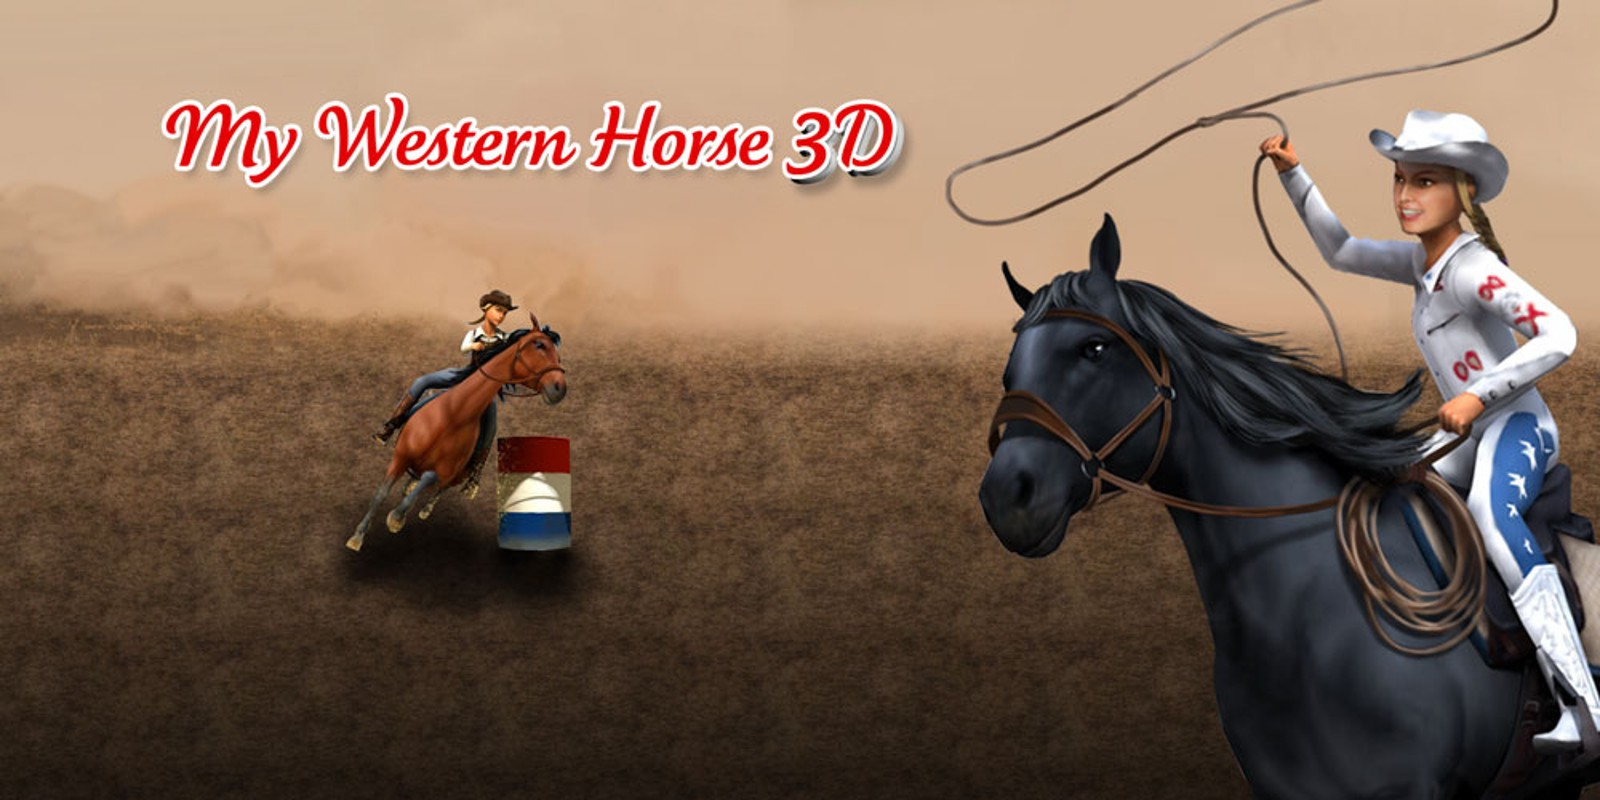 My Western Horse 3D